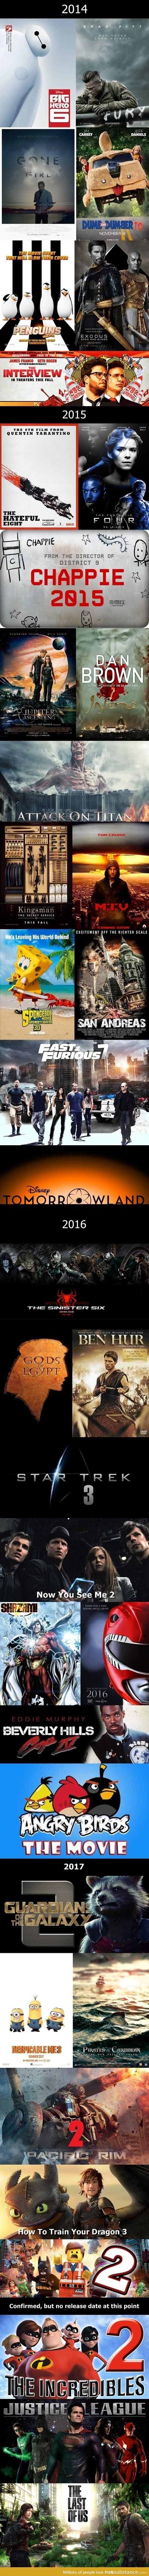 Movies Coming Soon 2014-2017